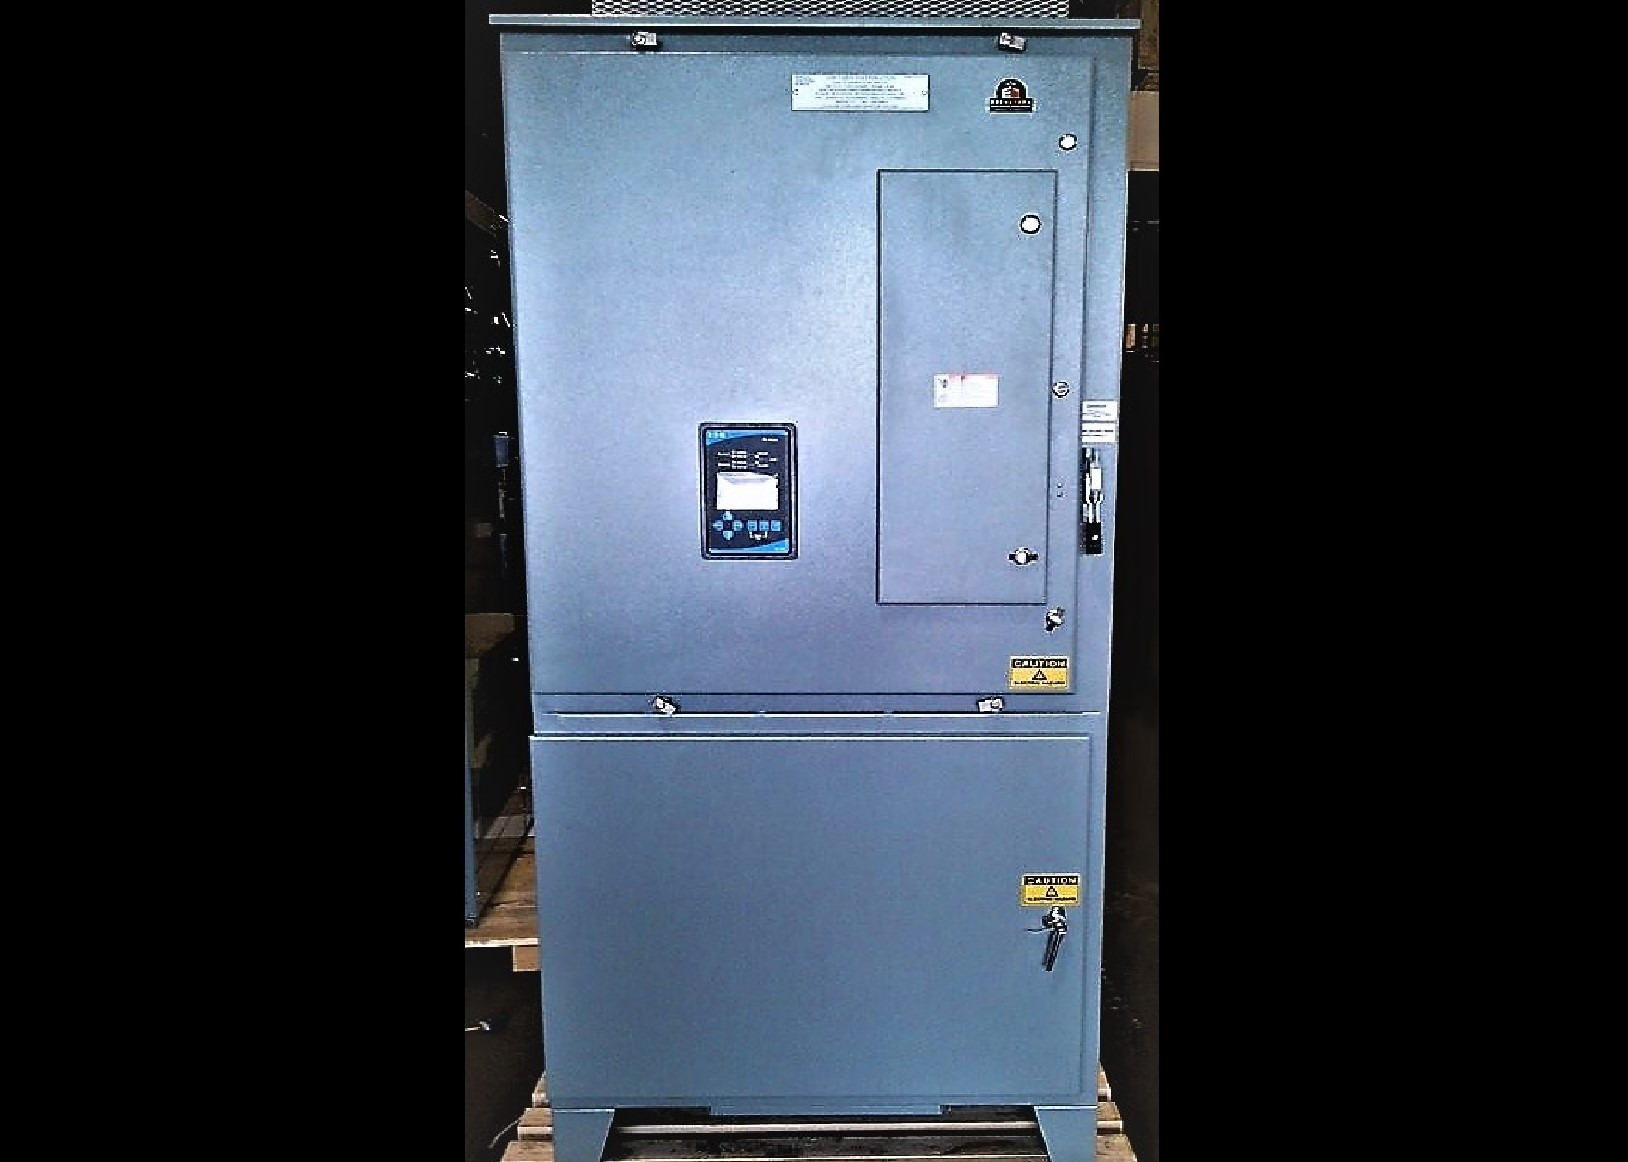 Power Distribution, Custom Controls : ESS Metron: Unitized ... on electrical monitor, electrical fuse, electrical header, electrical cabinet, electrical switch, electrical boxes types, electrical conduit, electrical plug in, electrical work, electrical switchboard, electrical power, electrical multimeter, electrical equipment, electrical disconnect, electrical committee, electrical junction boxes, electrical pipe, electrical switches, electrical receptacle, electrical control station,